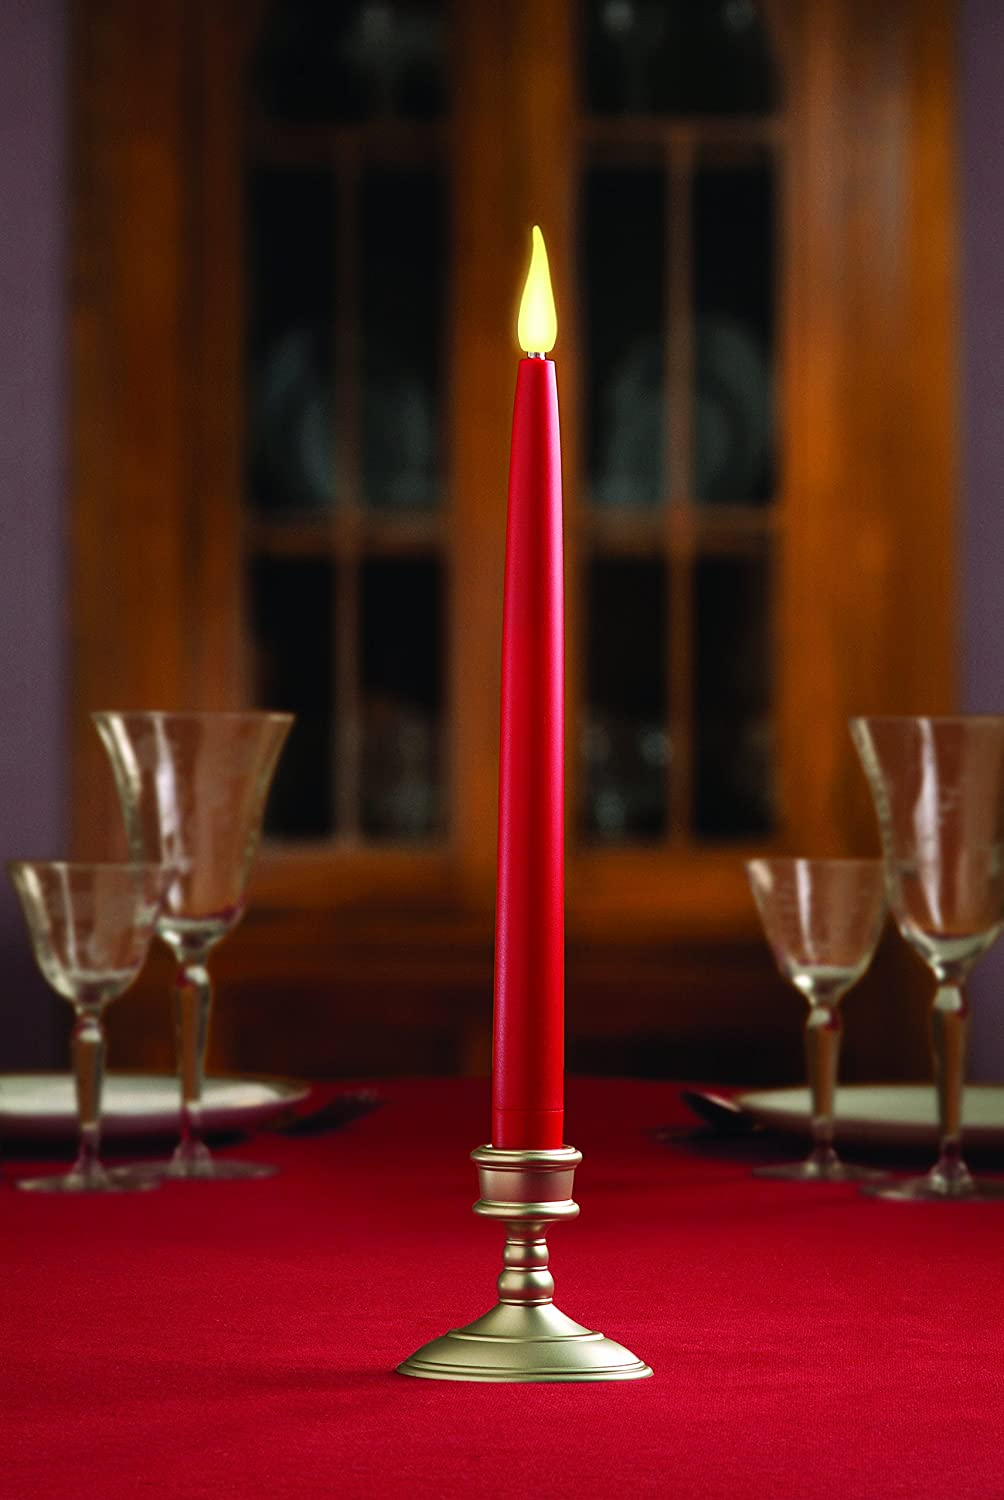 12-Inch Xodus Innovations FPC1468 Taper LED Flameless Battery Operated Candle with 6 Hour Timer Red